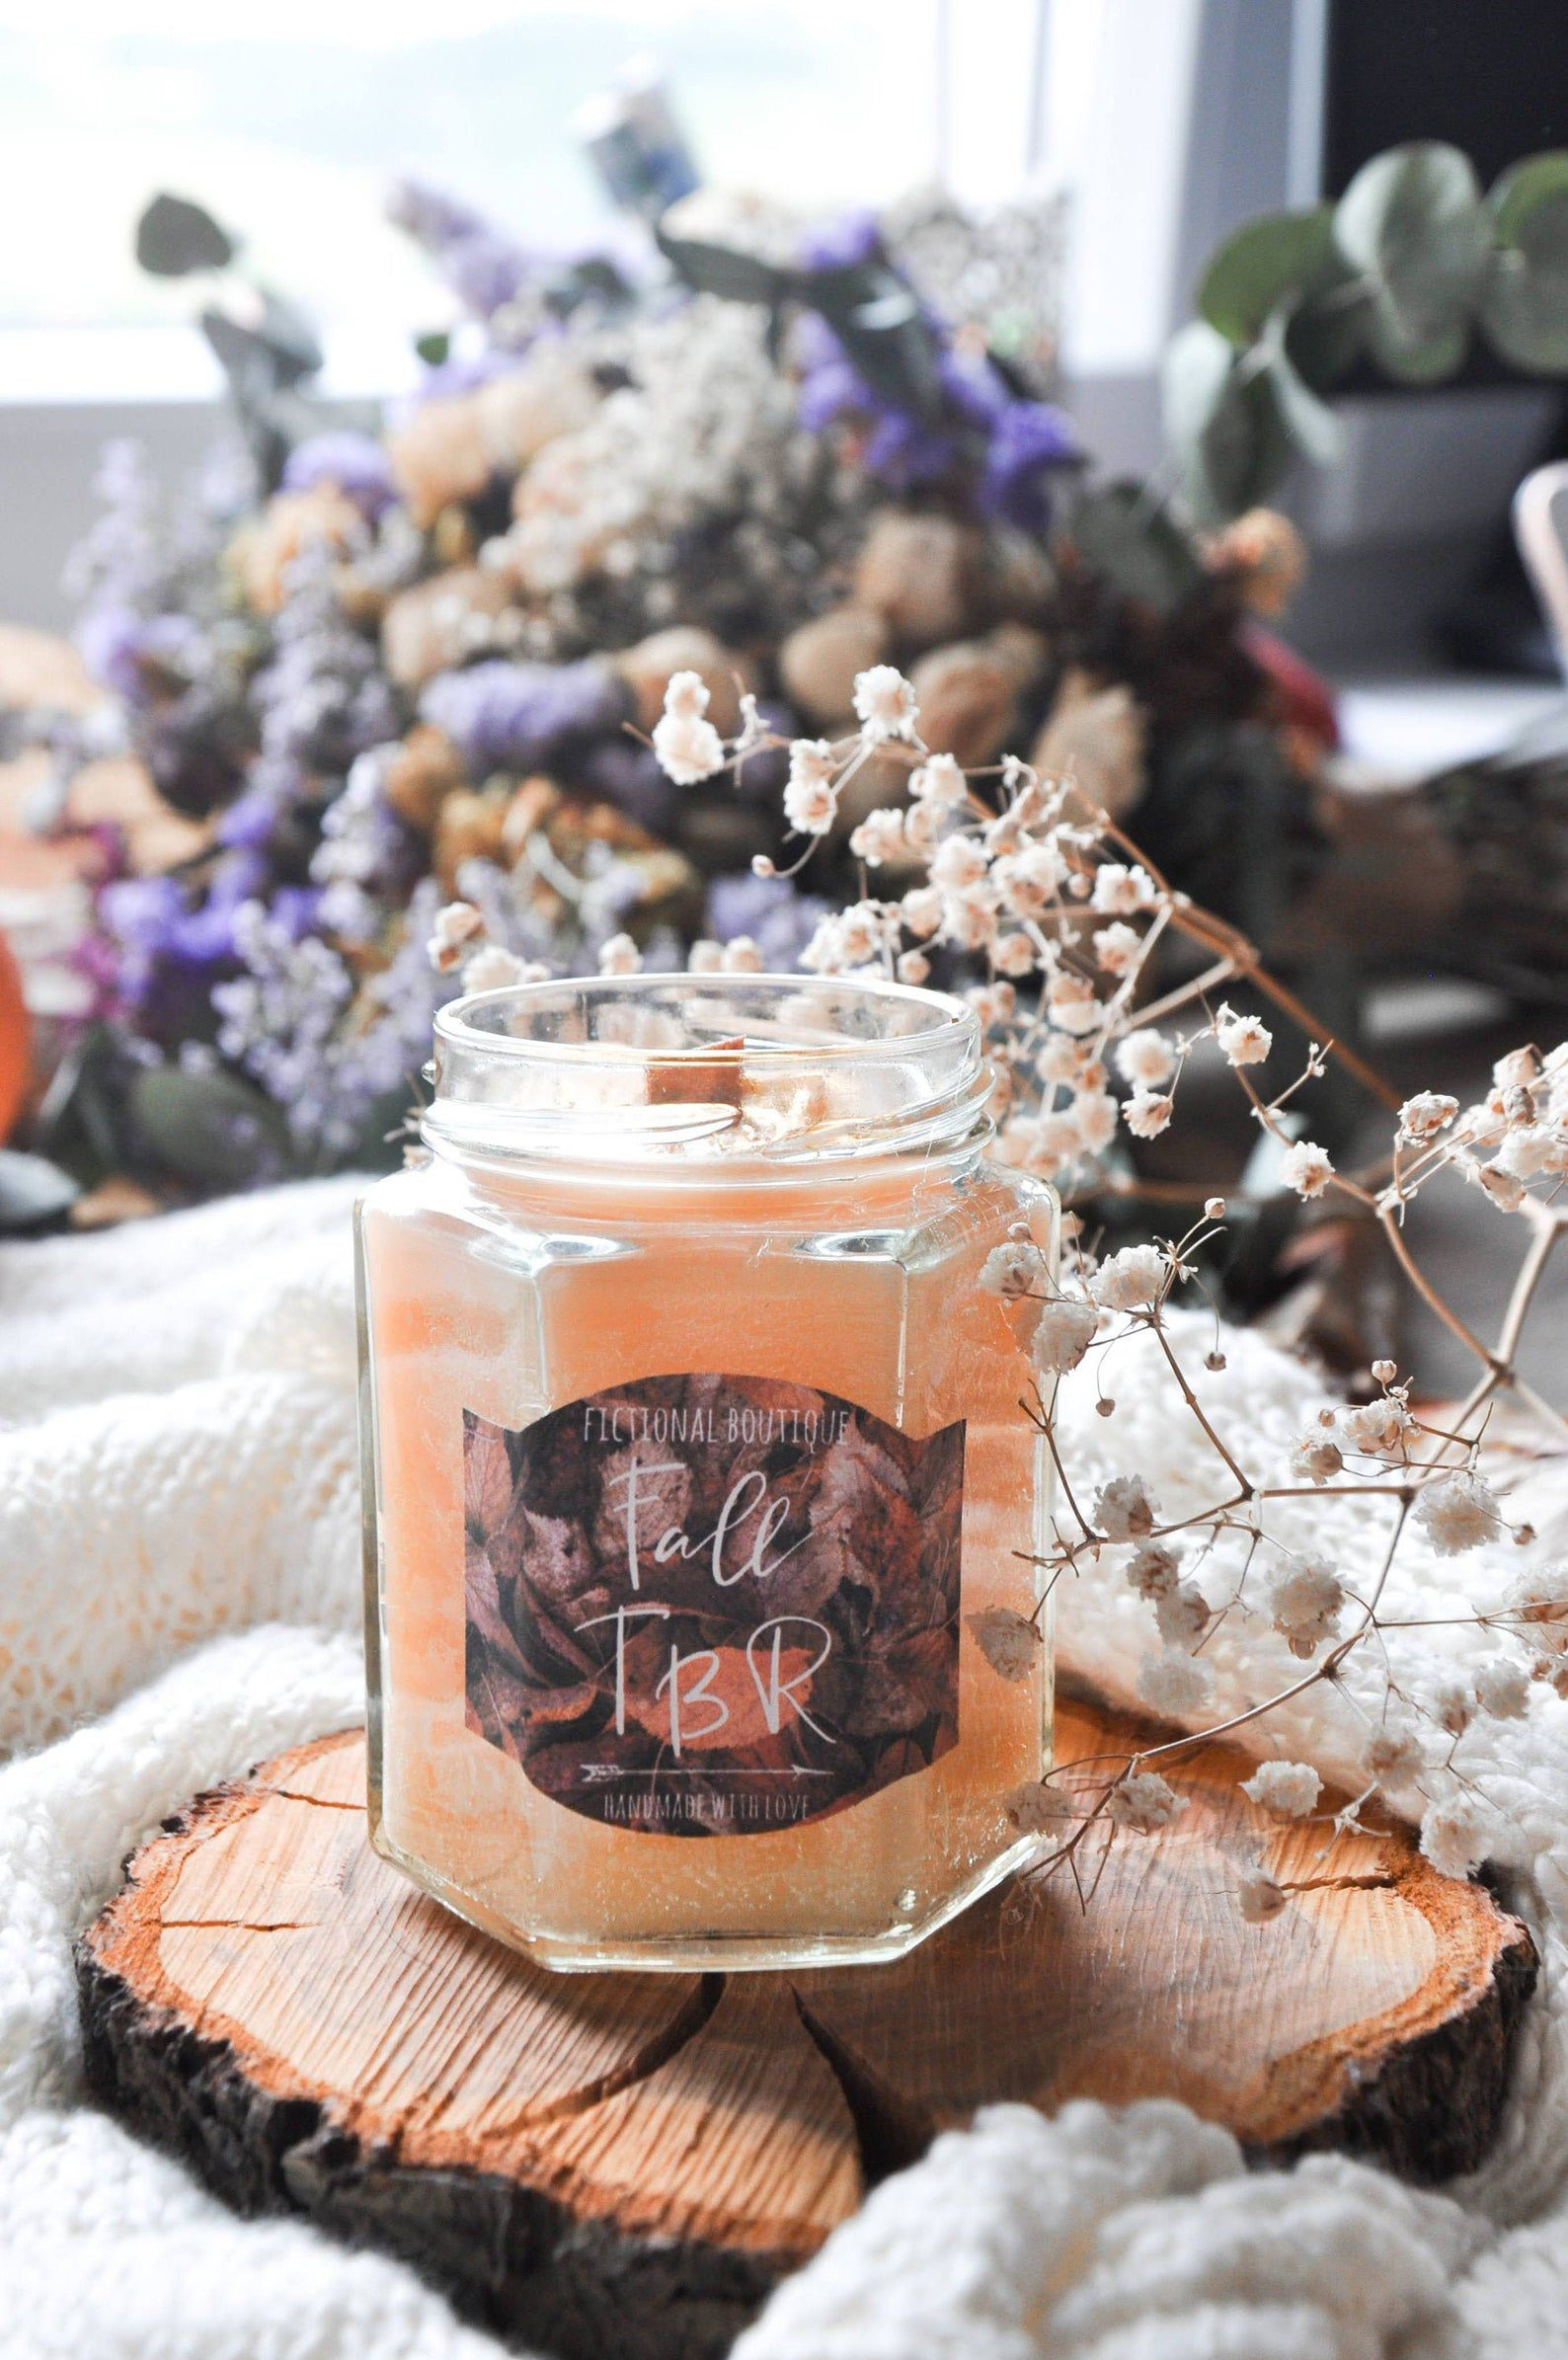 """Image of orange sparkly candle named """"Fall TBR."""""""